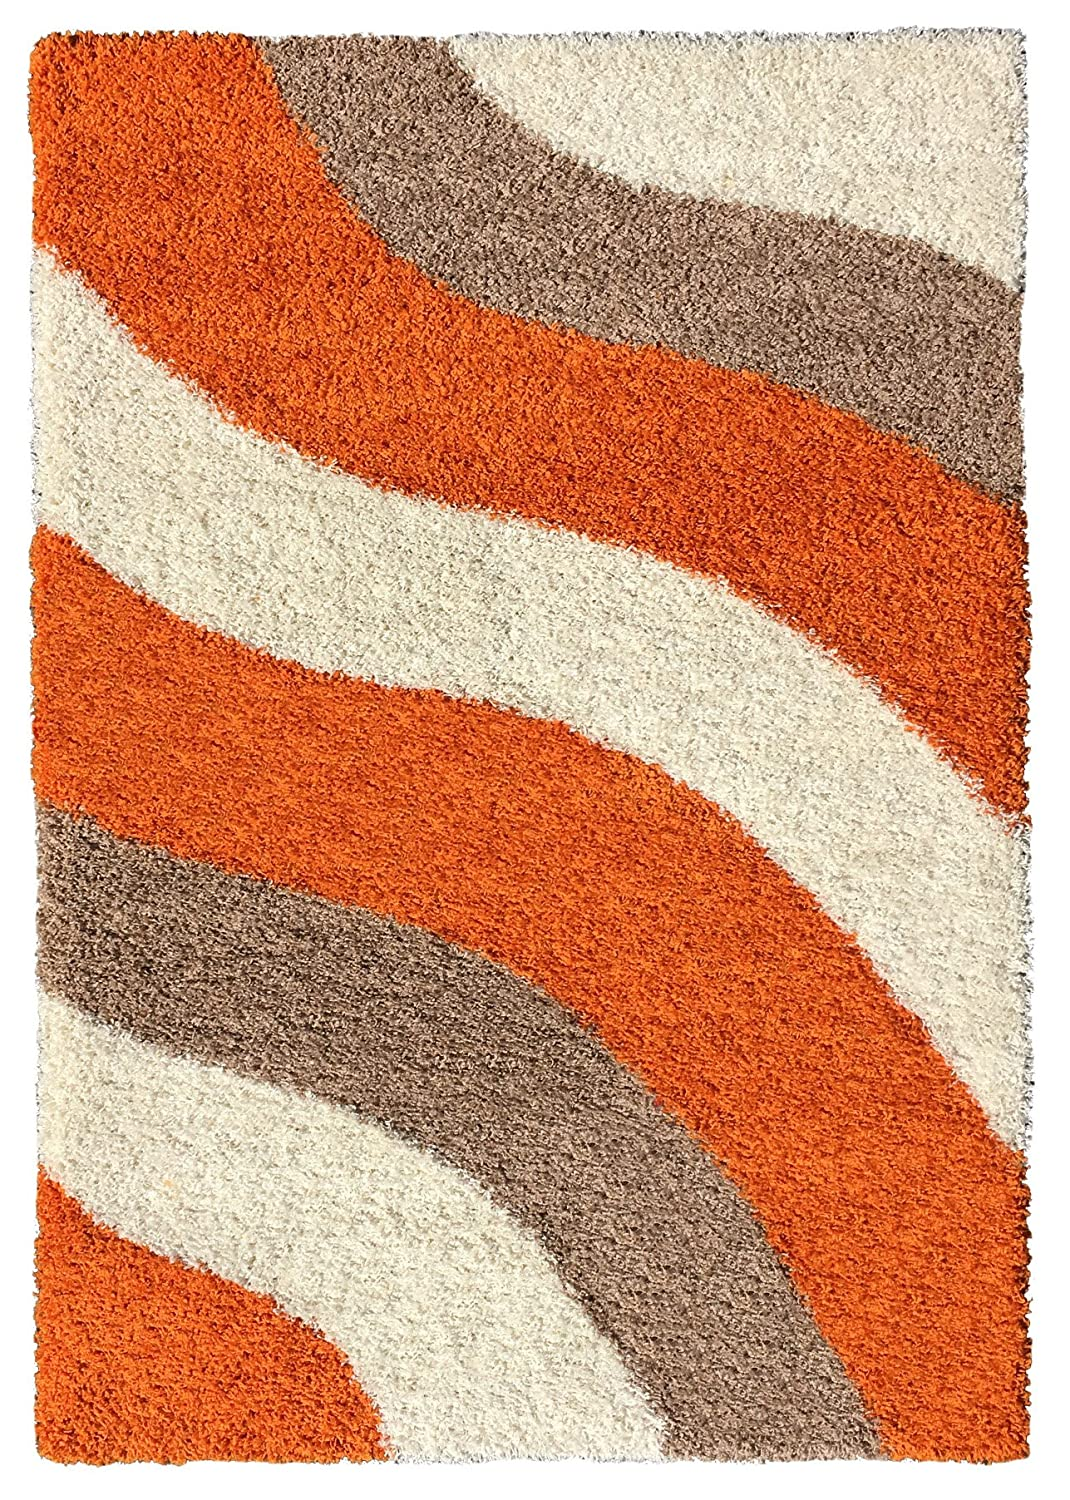 amazoncom soft shag area rug 3x5 geometric striped orange ivory grey shaggy rug area rugs for living room bedroom kitchen decorative modern